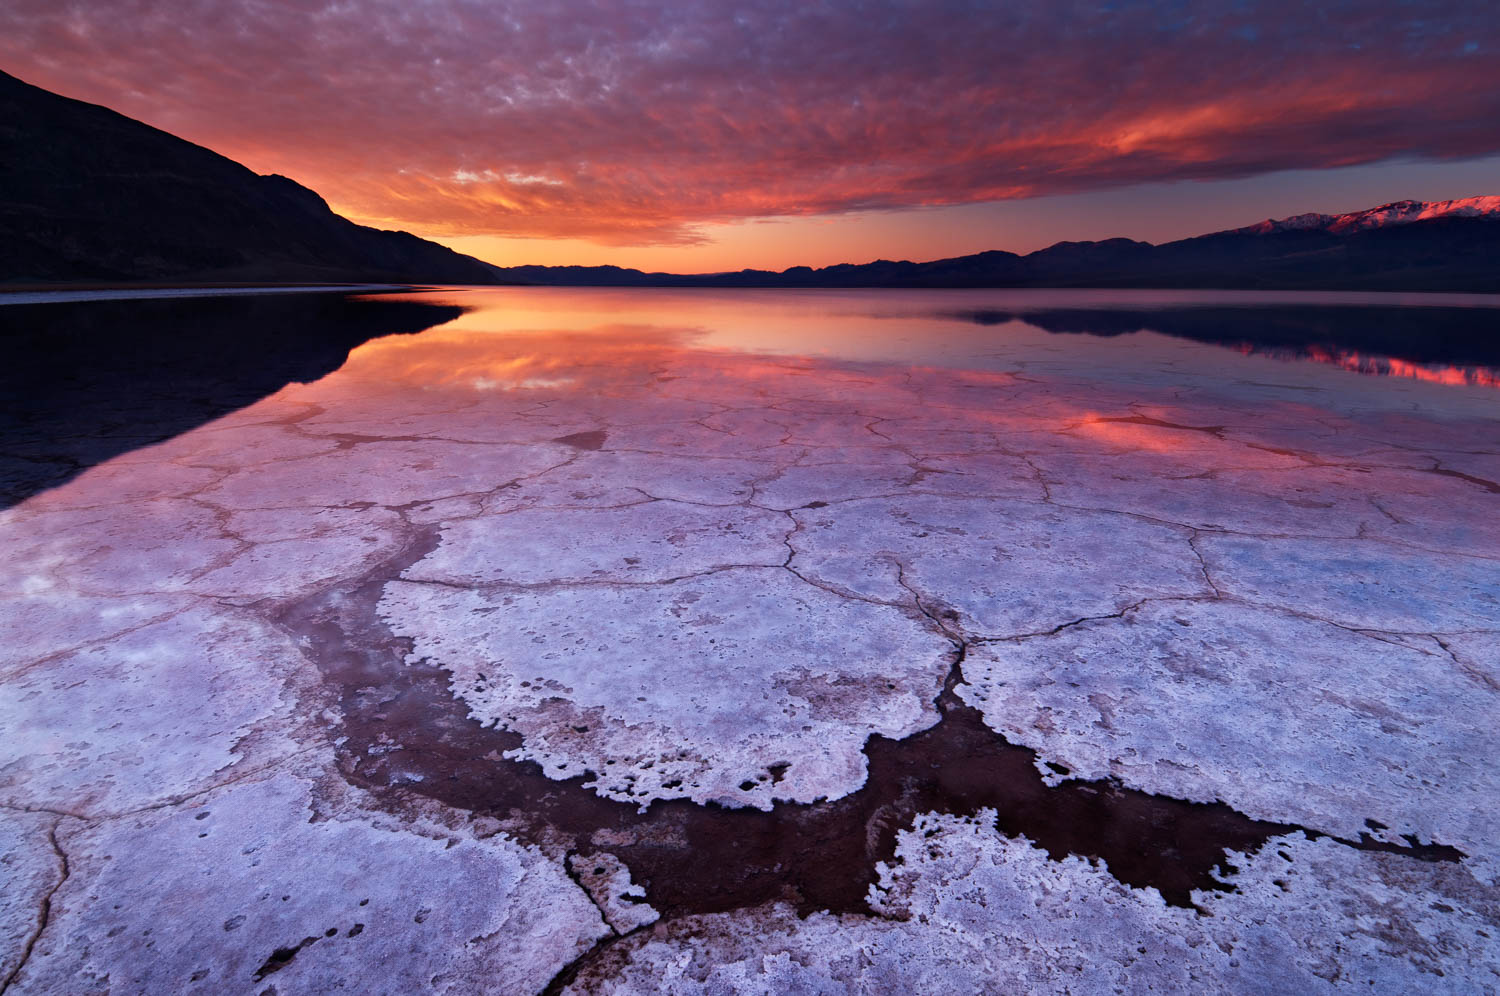 Sunrise over the Badwater Basin Landscape in Death Valley